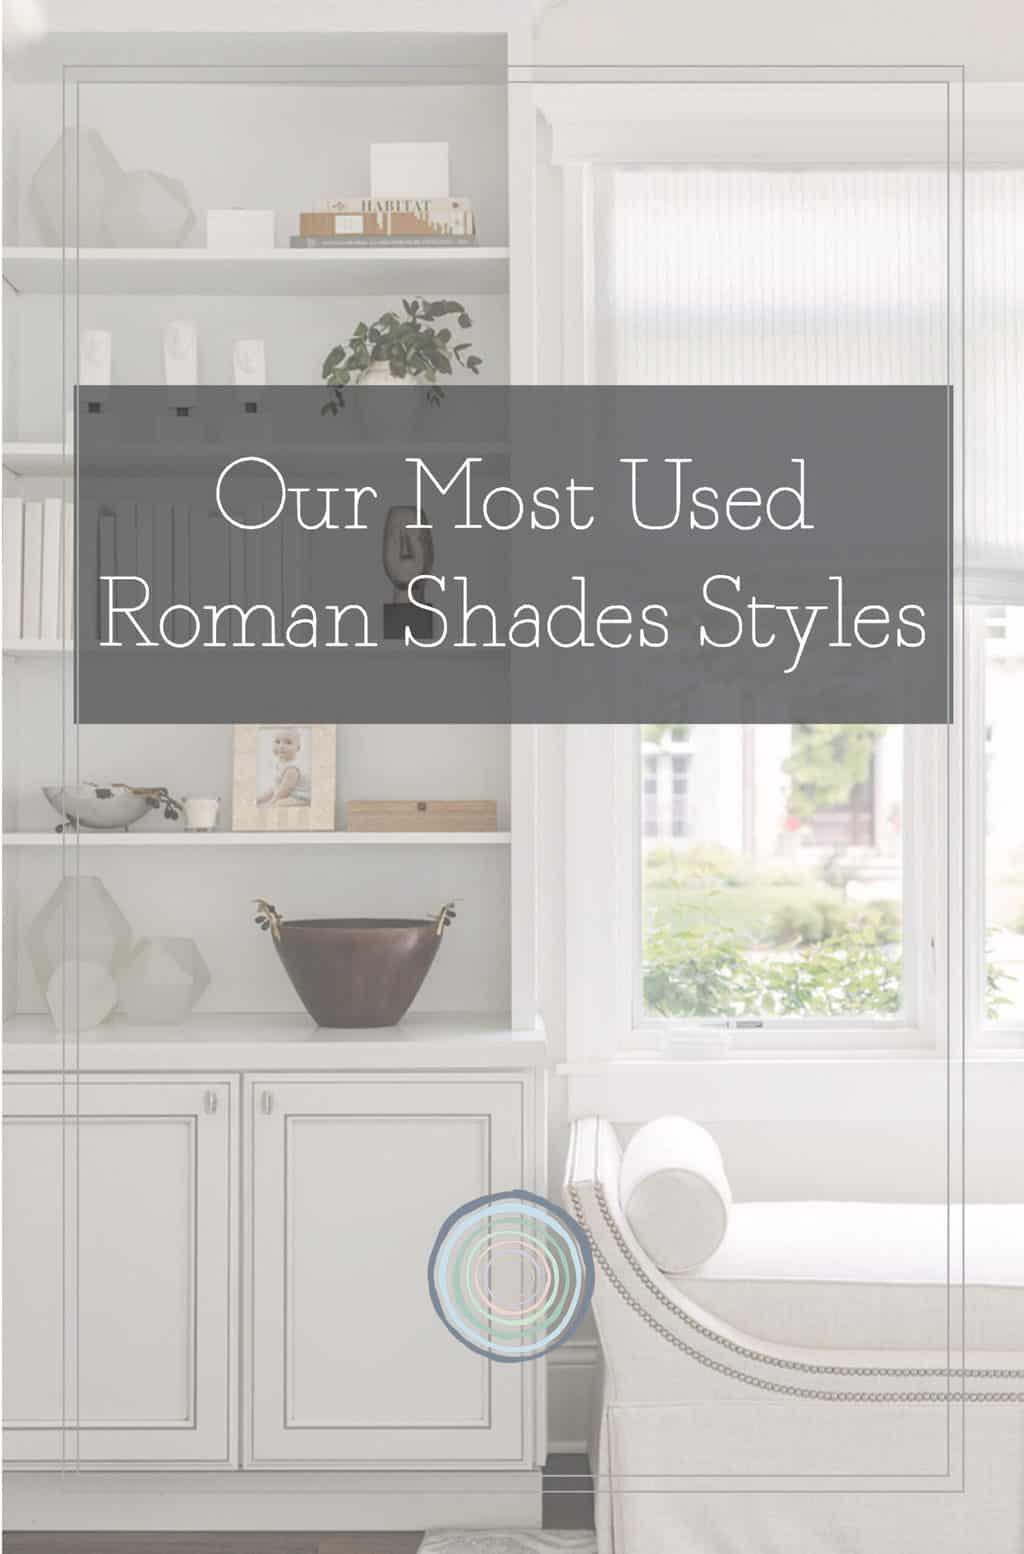 Our Most Used Roman Shades Styles